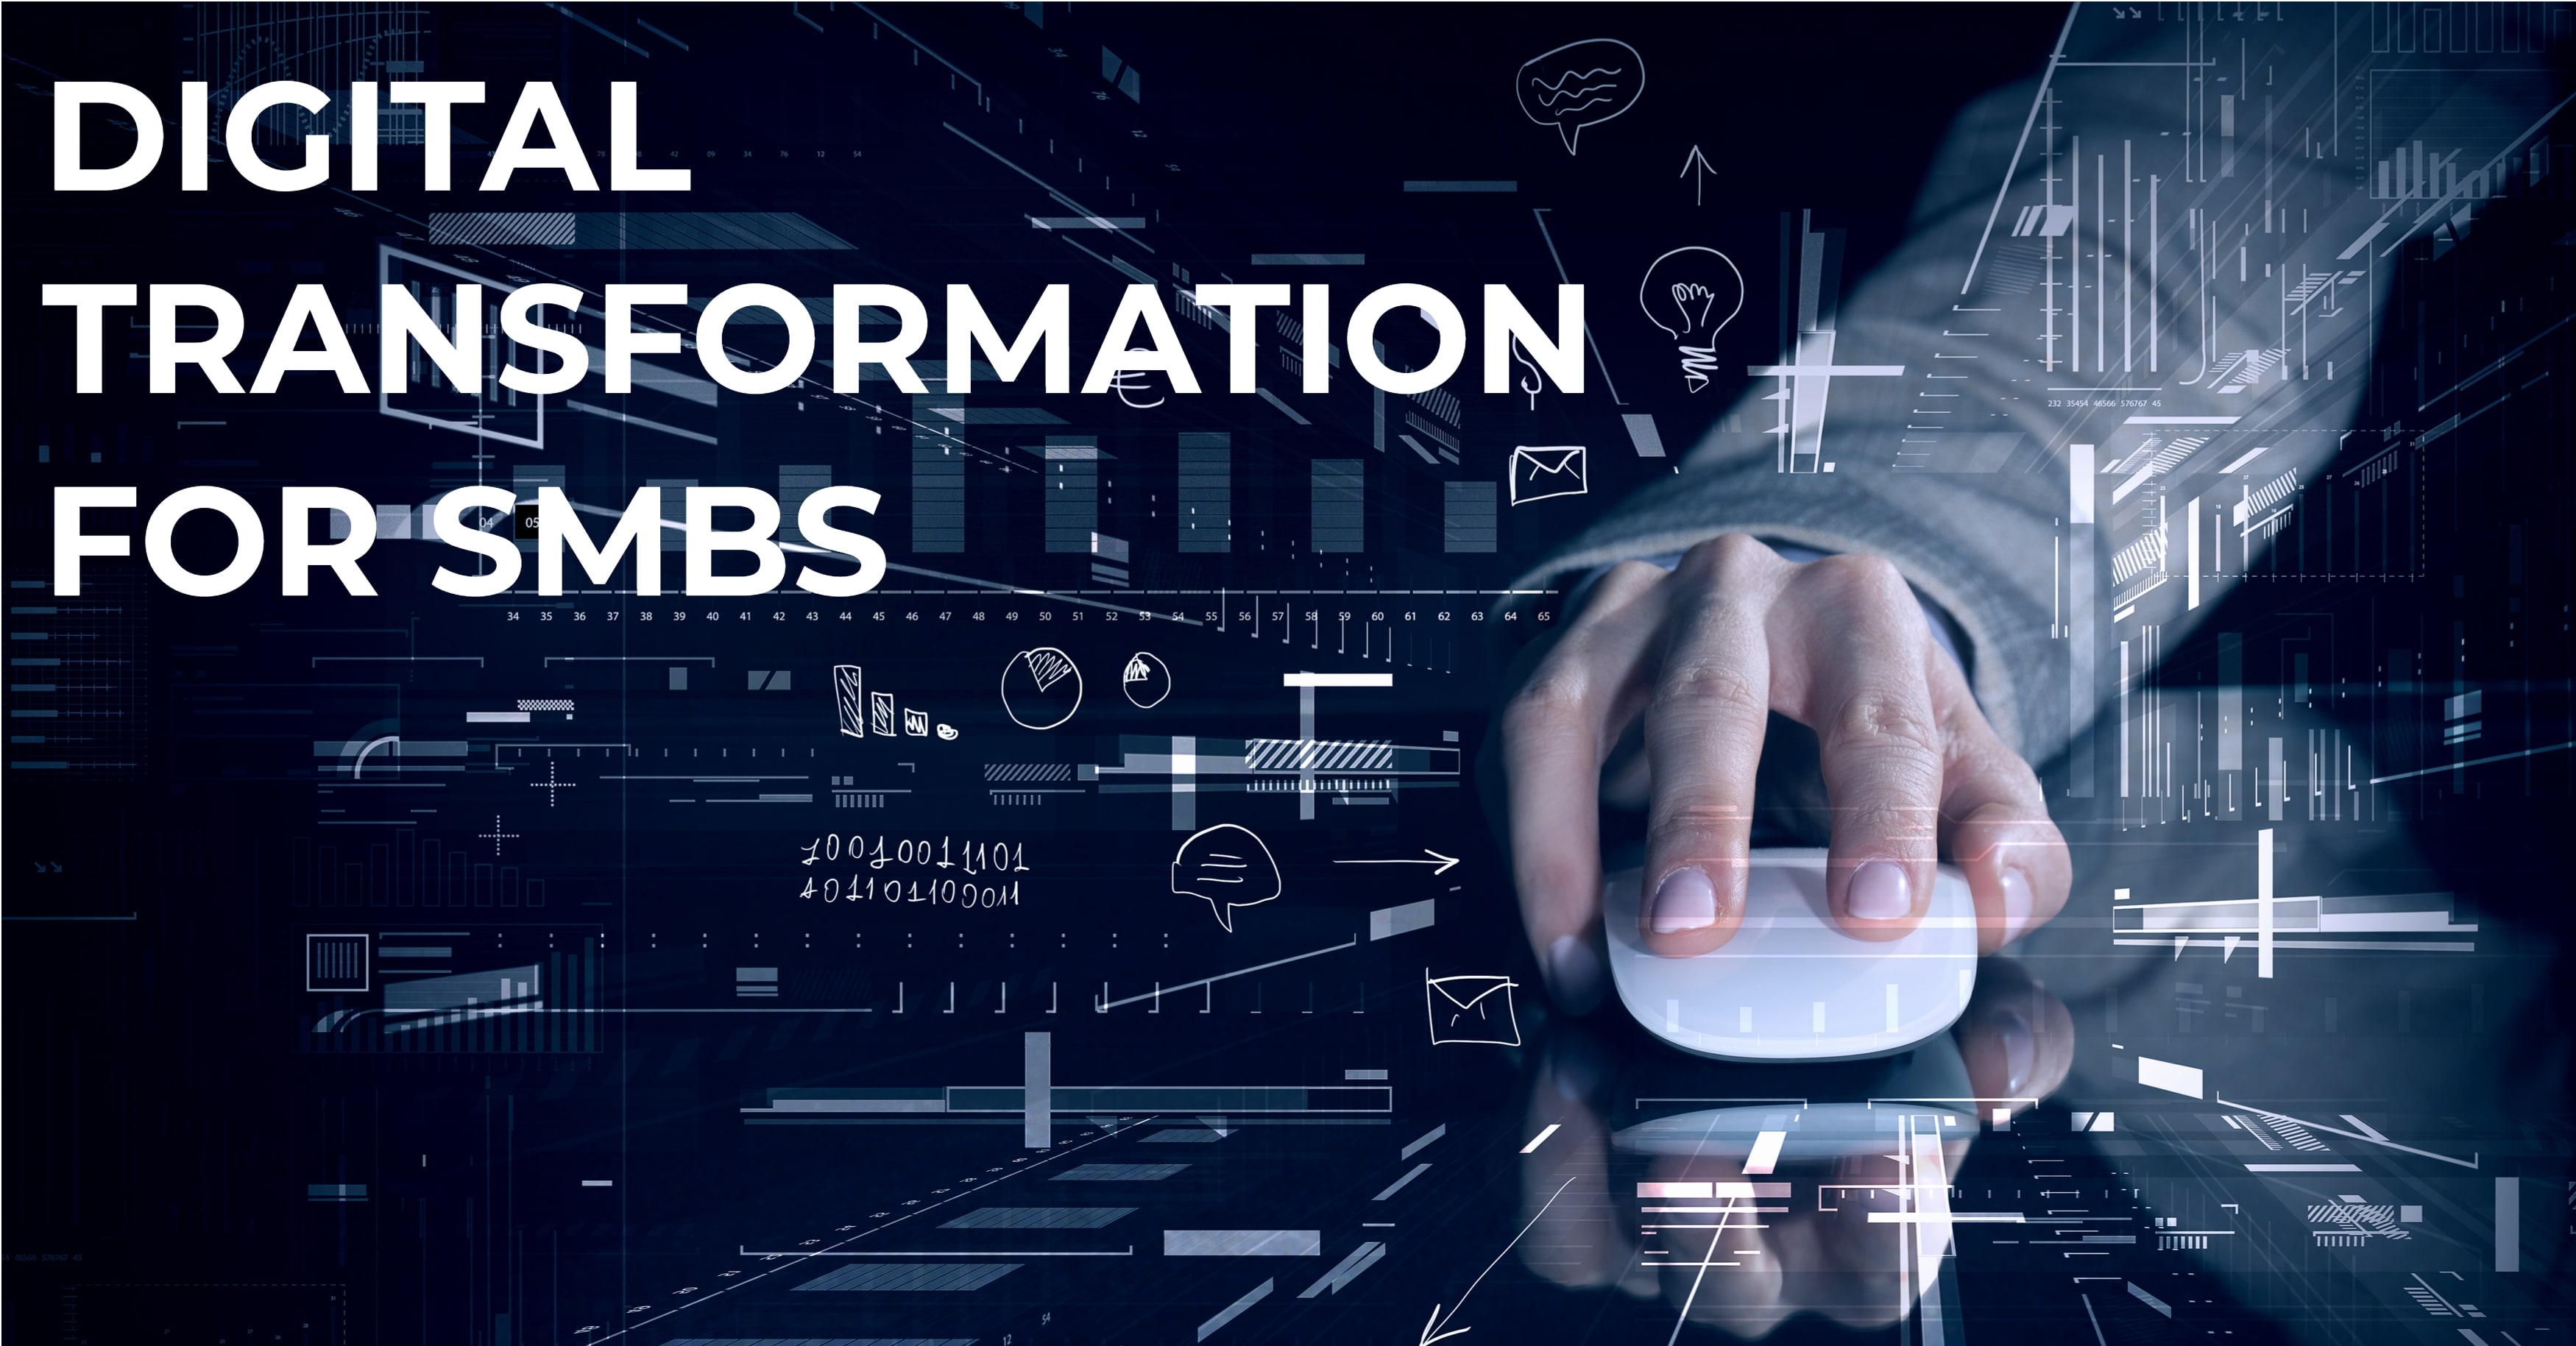 5 Tips for Effective SMB Digital Transformation